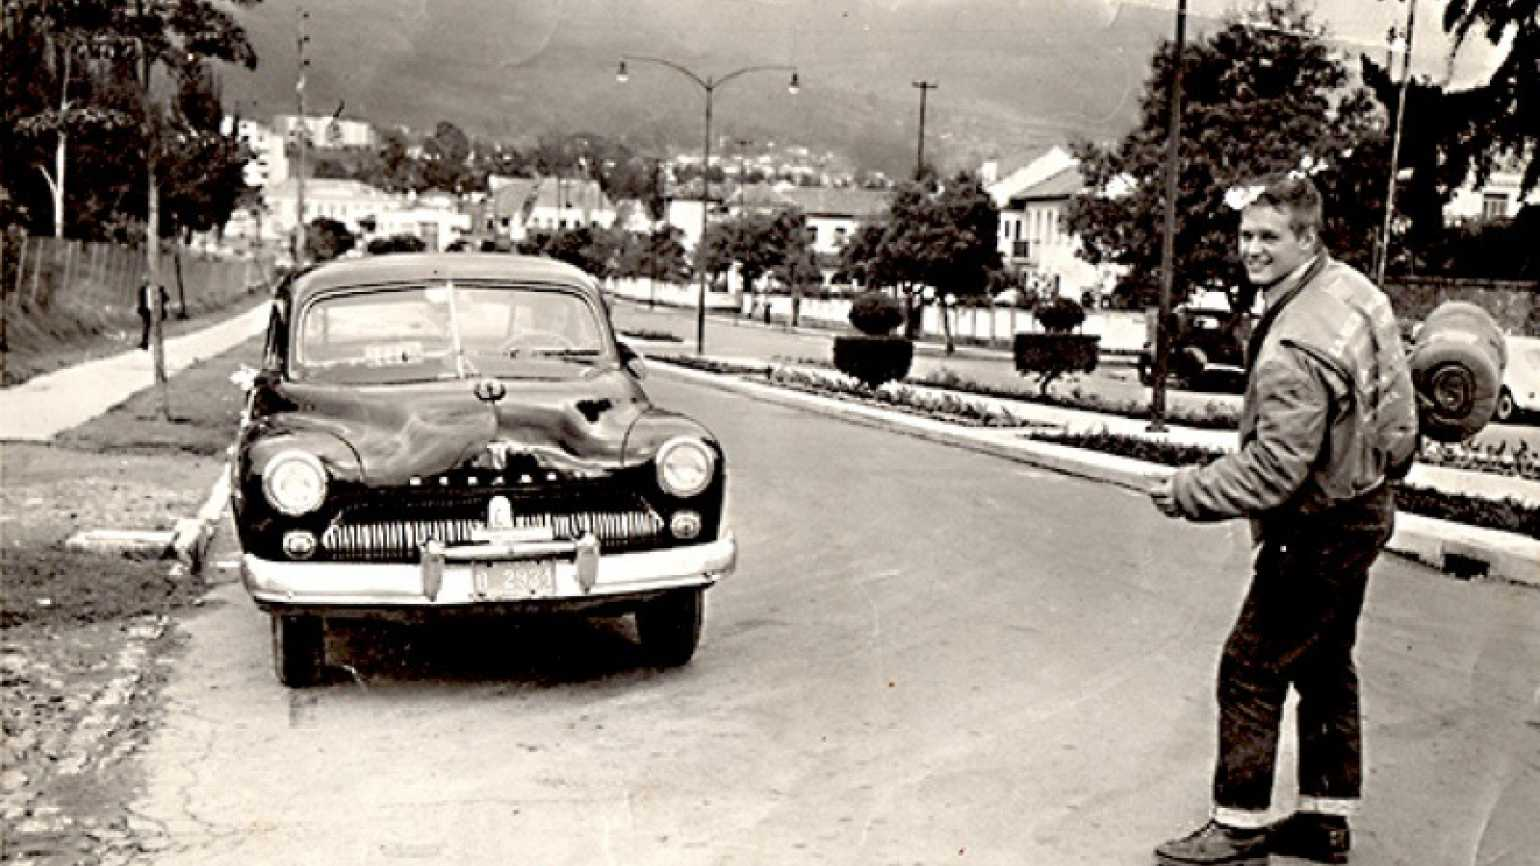 A young man next to a taxi in Ecuador, 1961. Photo courtesy Found magazine.